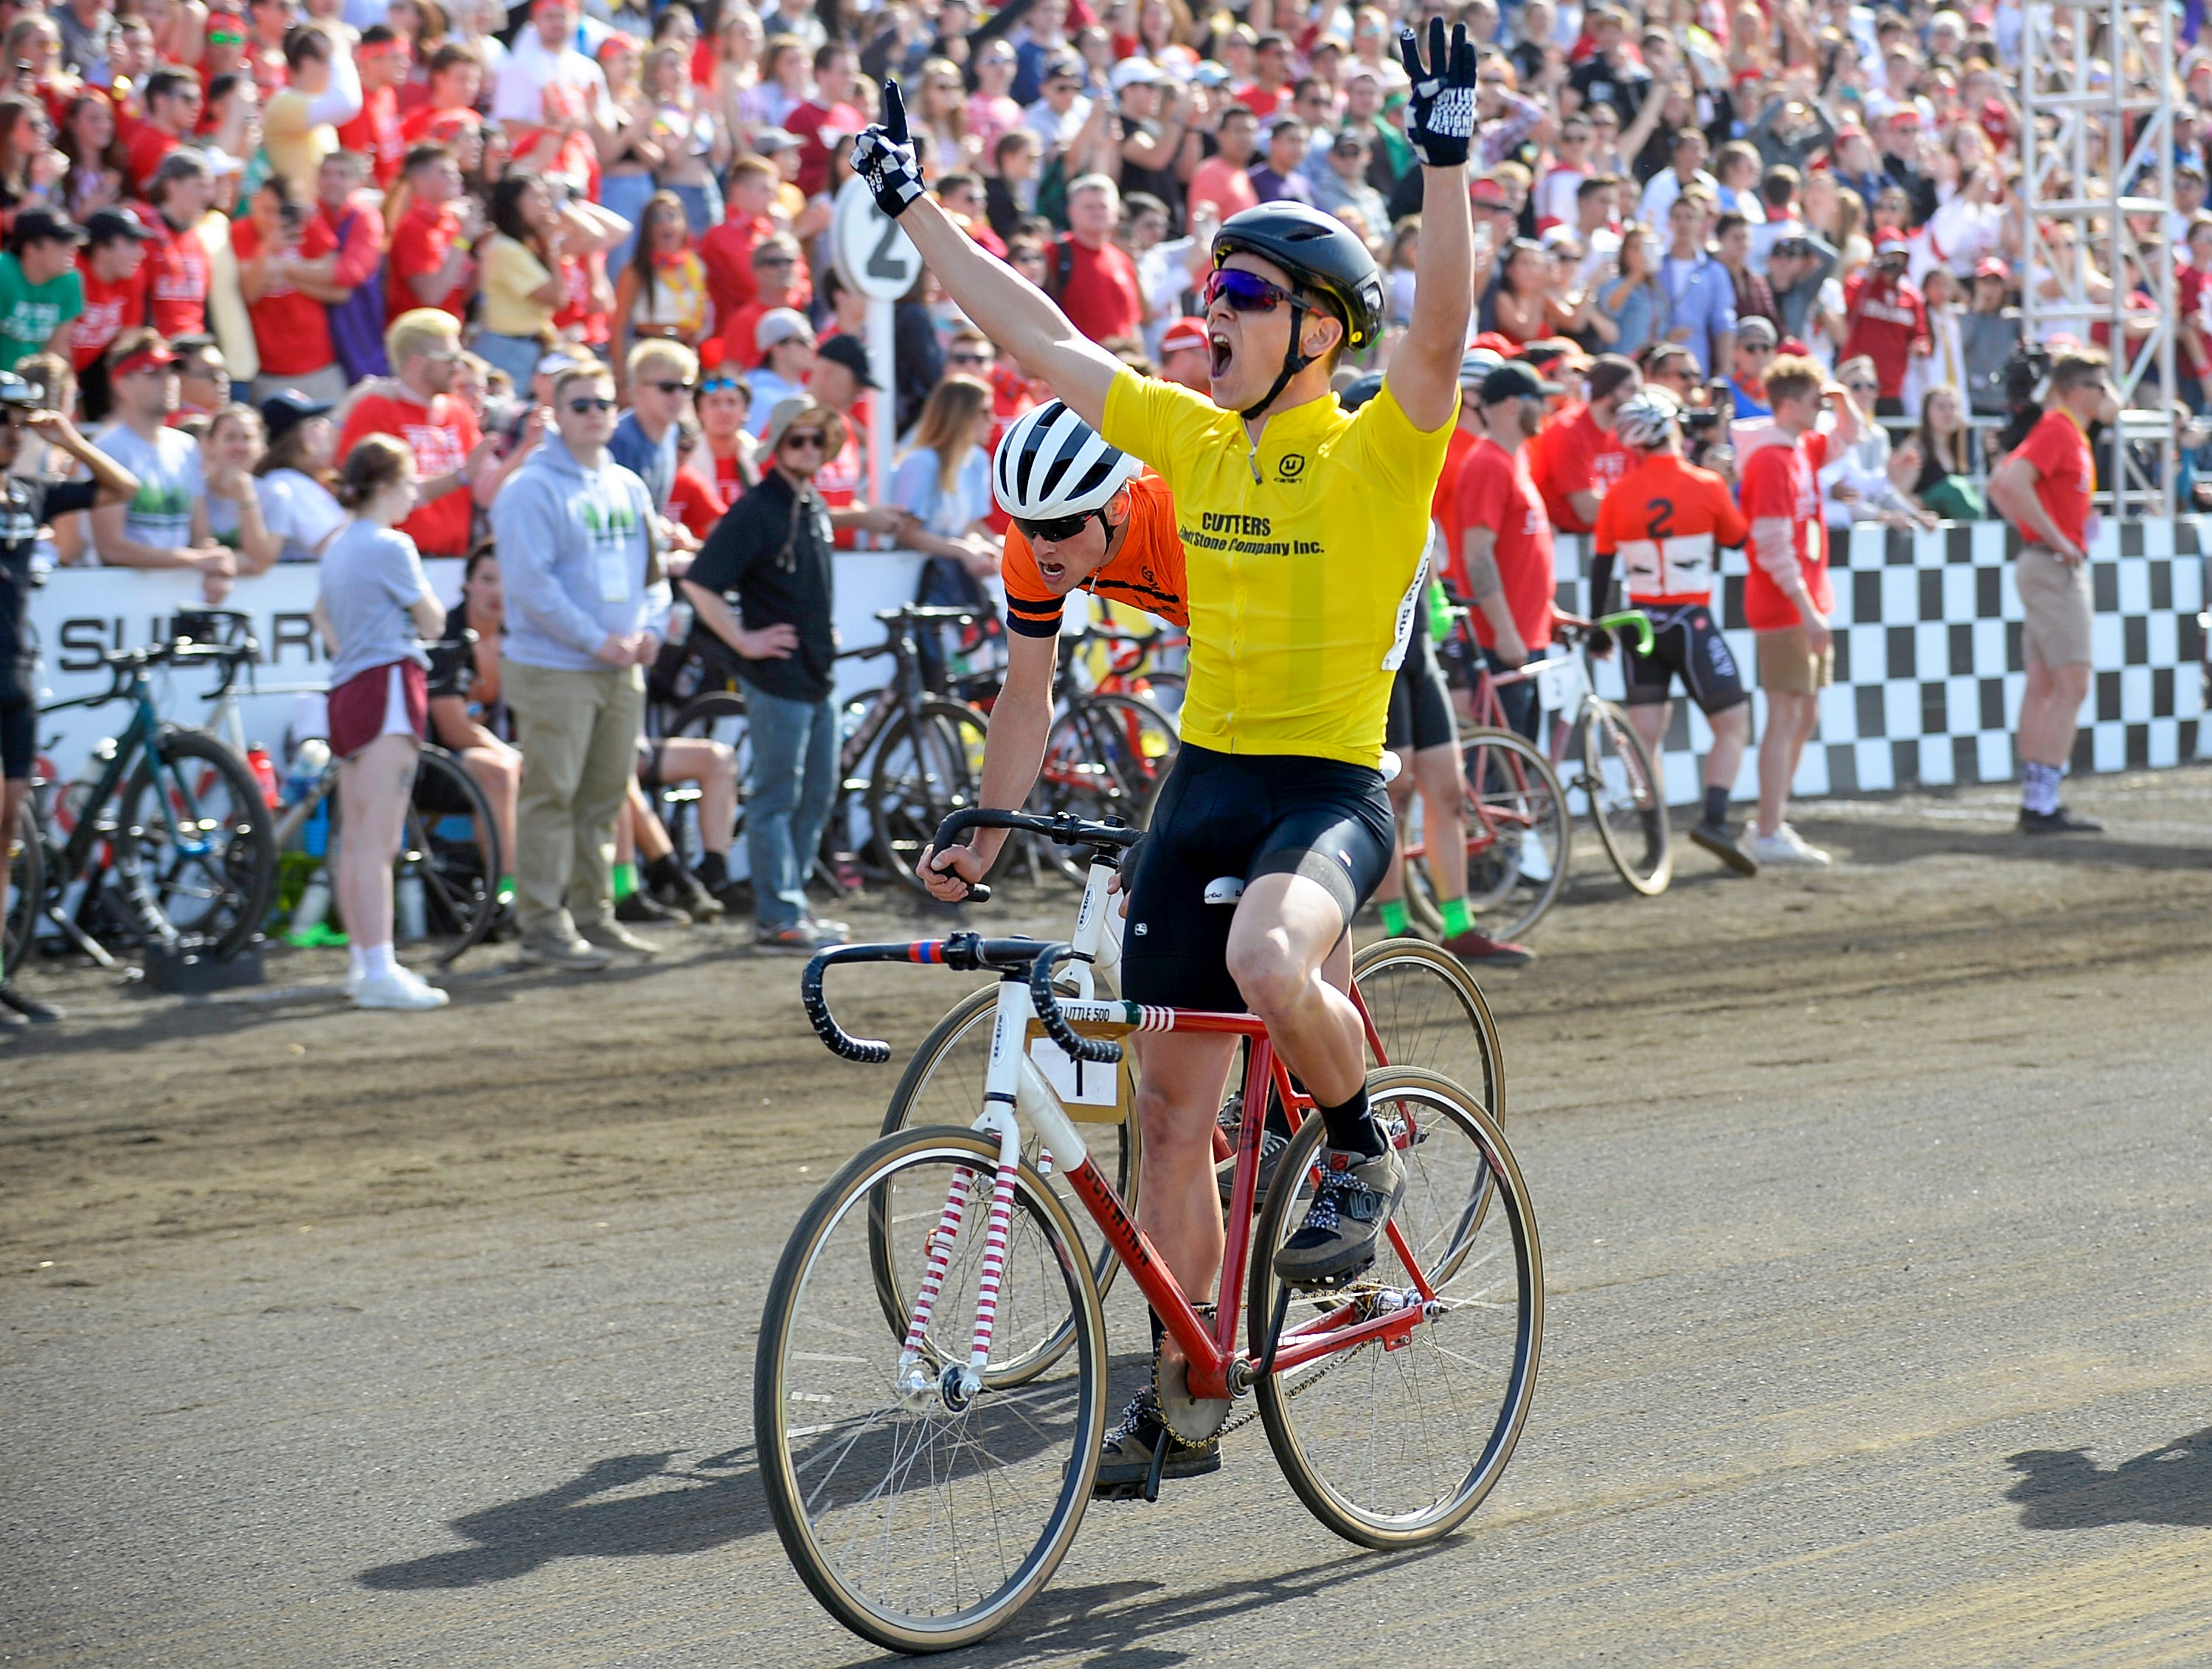 Noble Guyon of Cutters celebrates after crossing the finish line to win the men's Little 500 at Bill Armstrong Stadium in Bloomington, Ind., on Saturday, April 13, 2019.